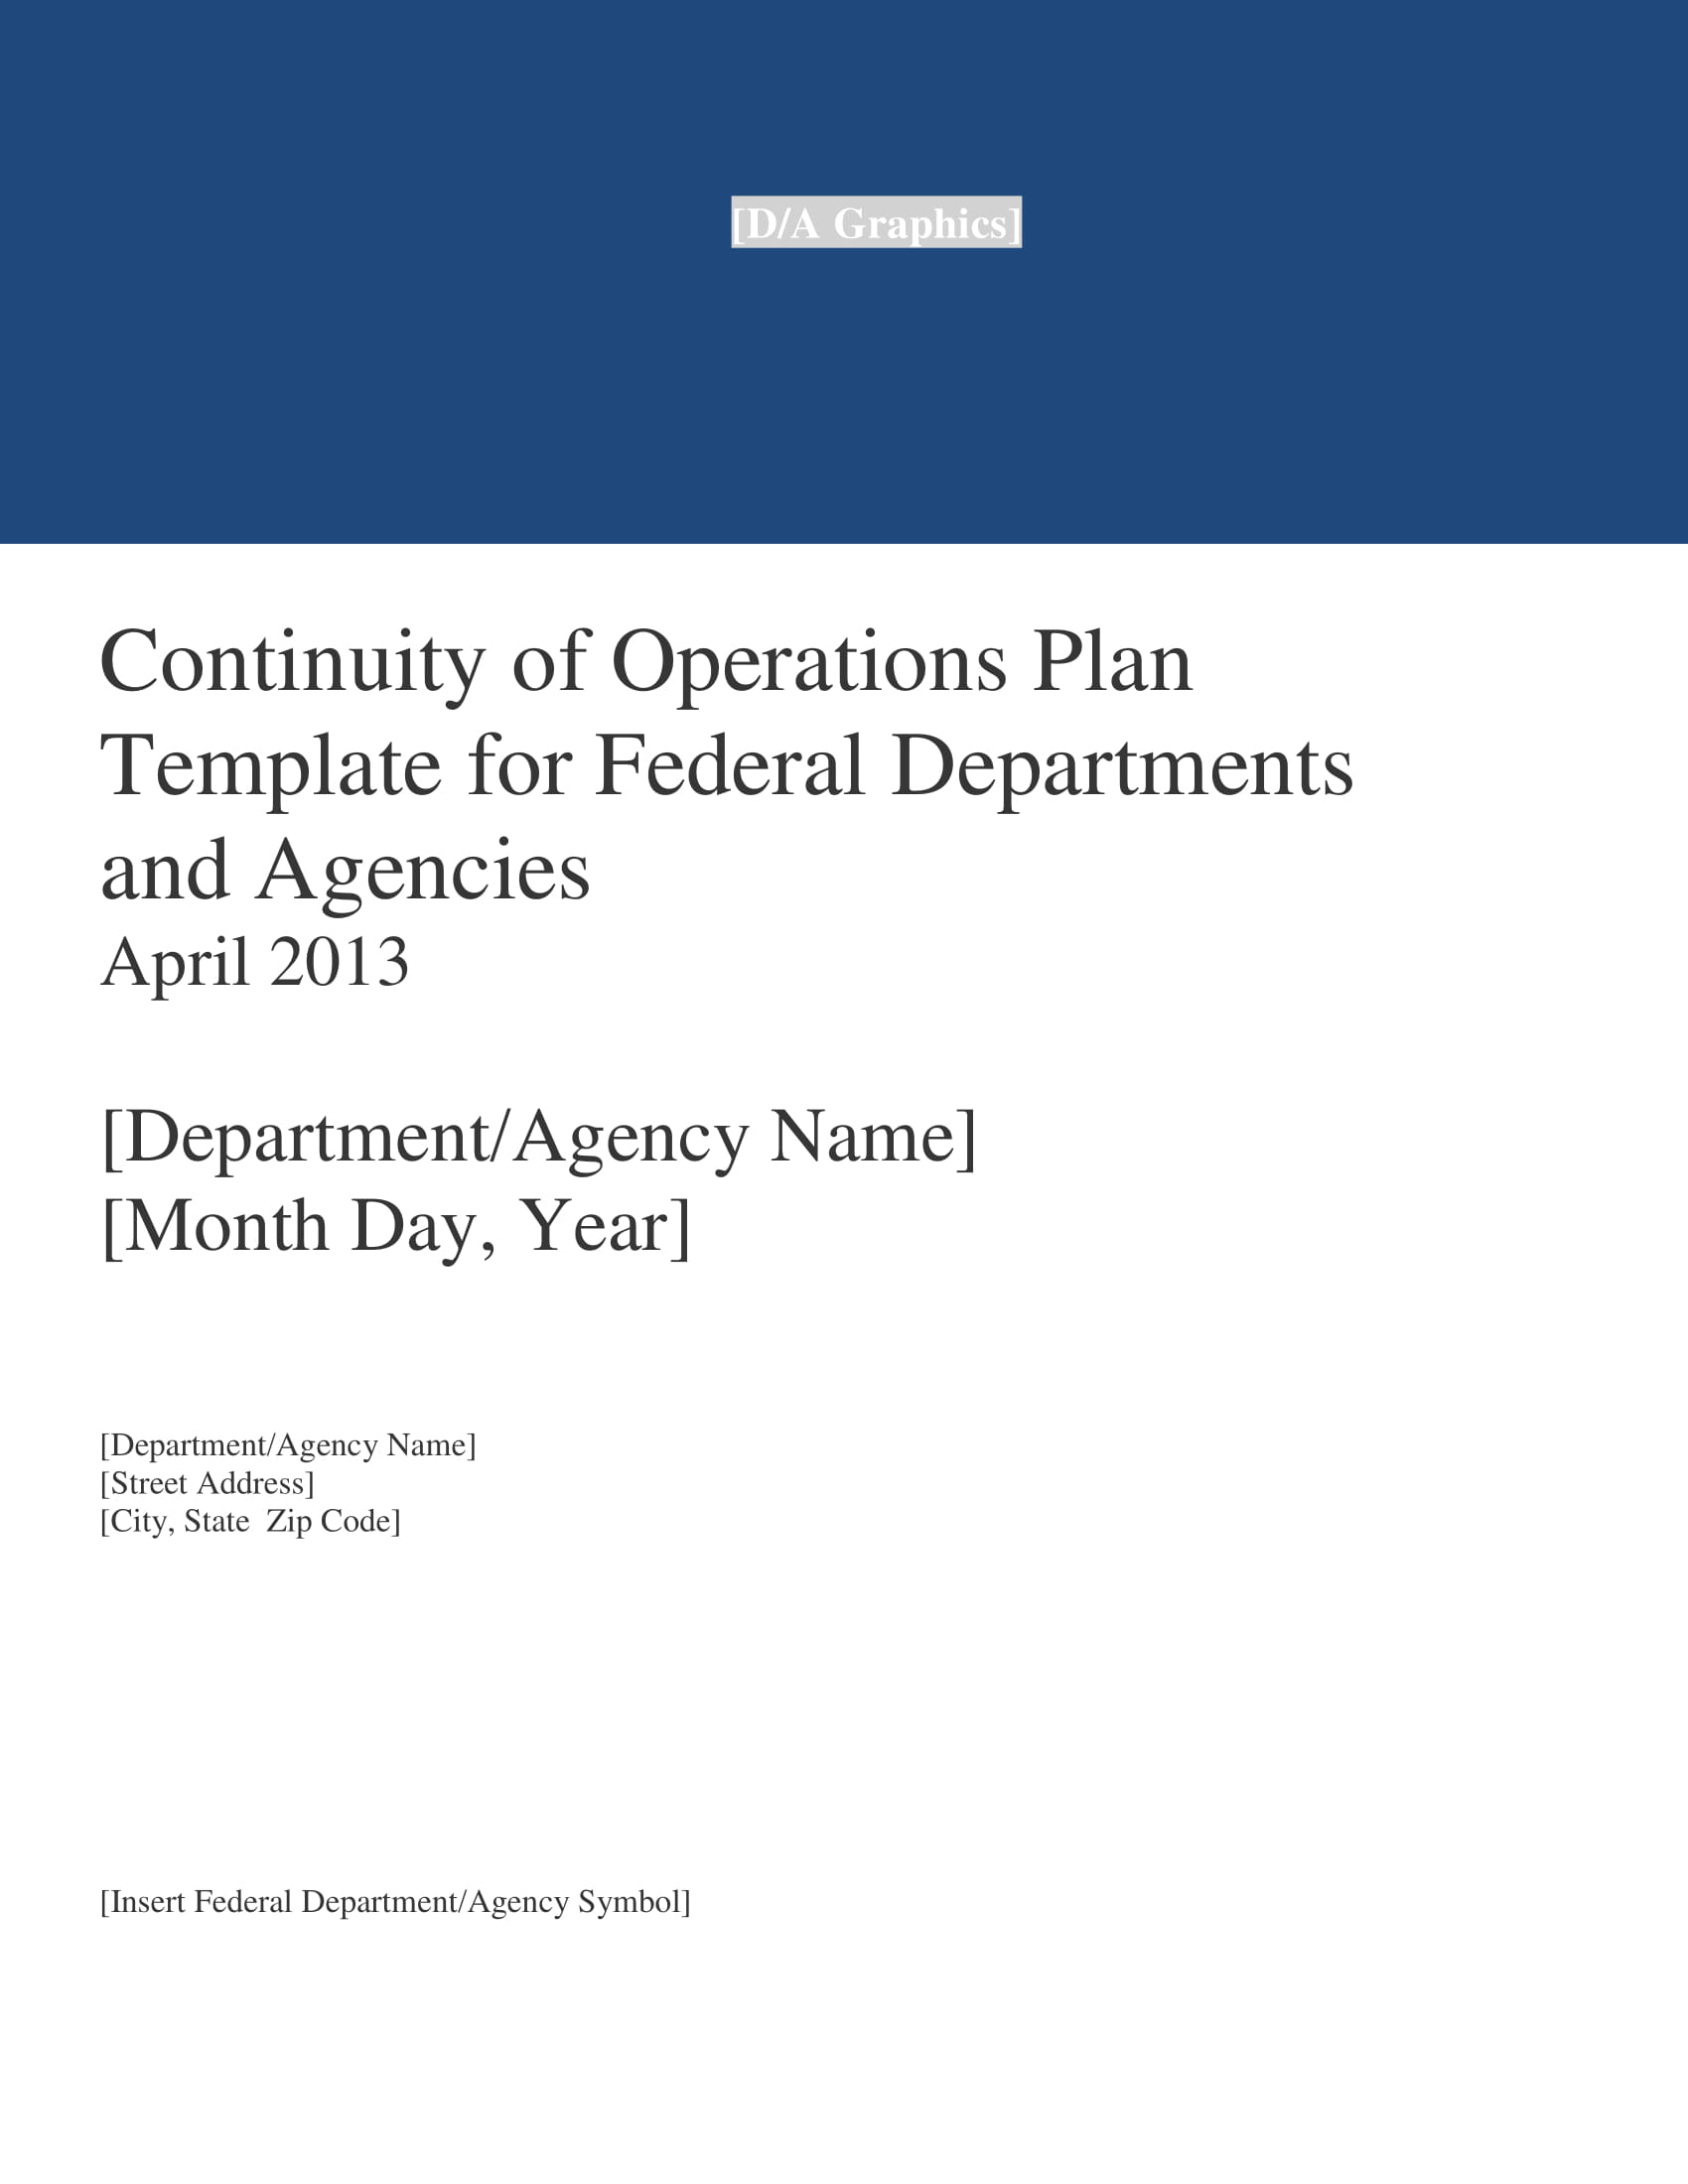 continuity of operations plan template for federal departments and agencies management example 01